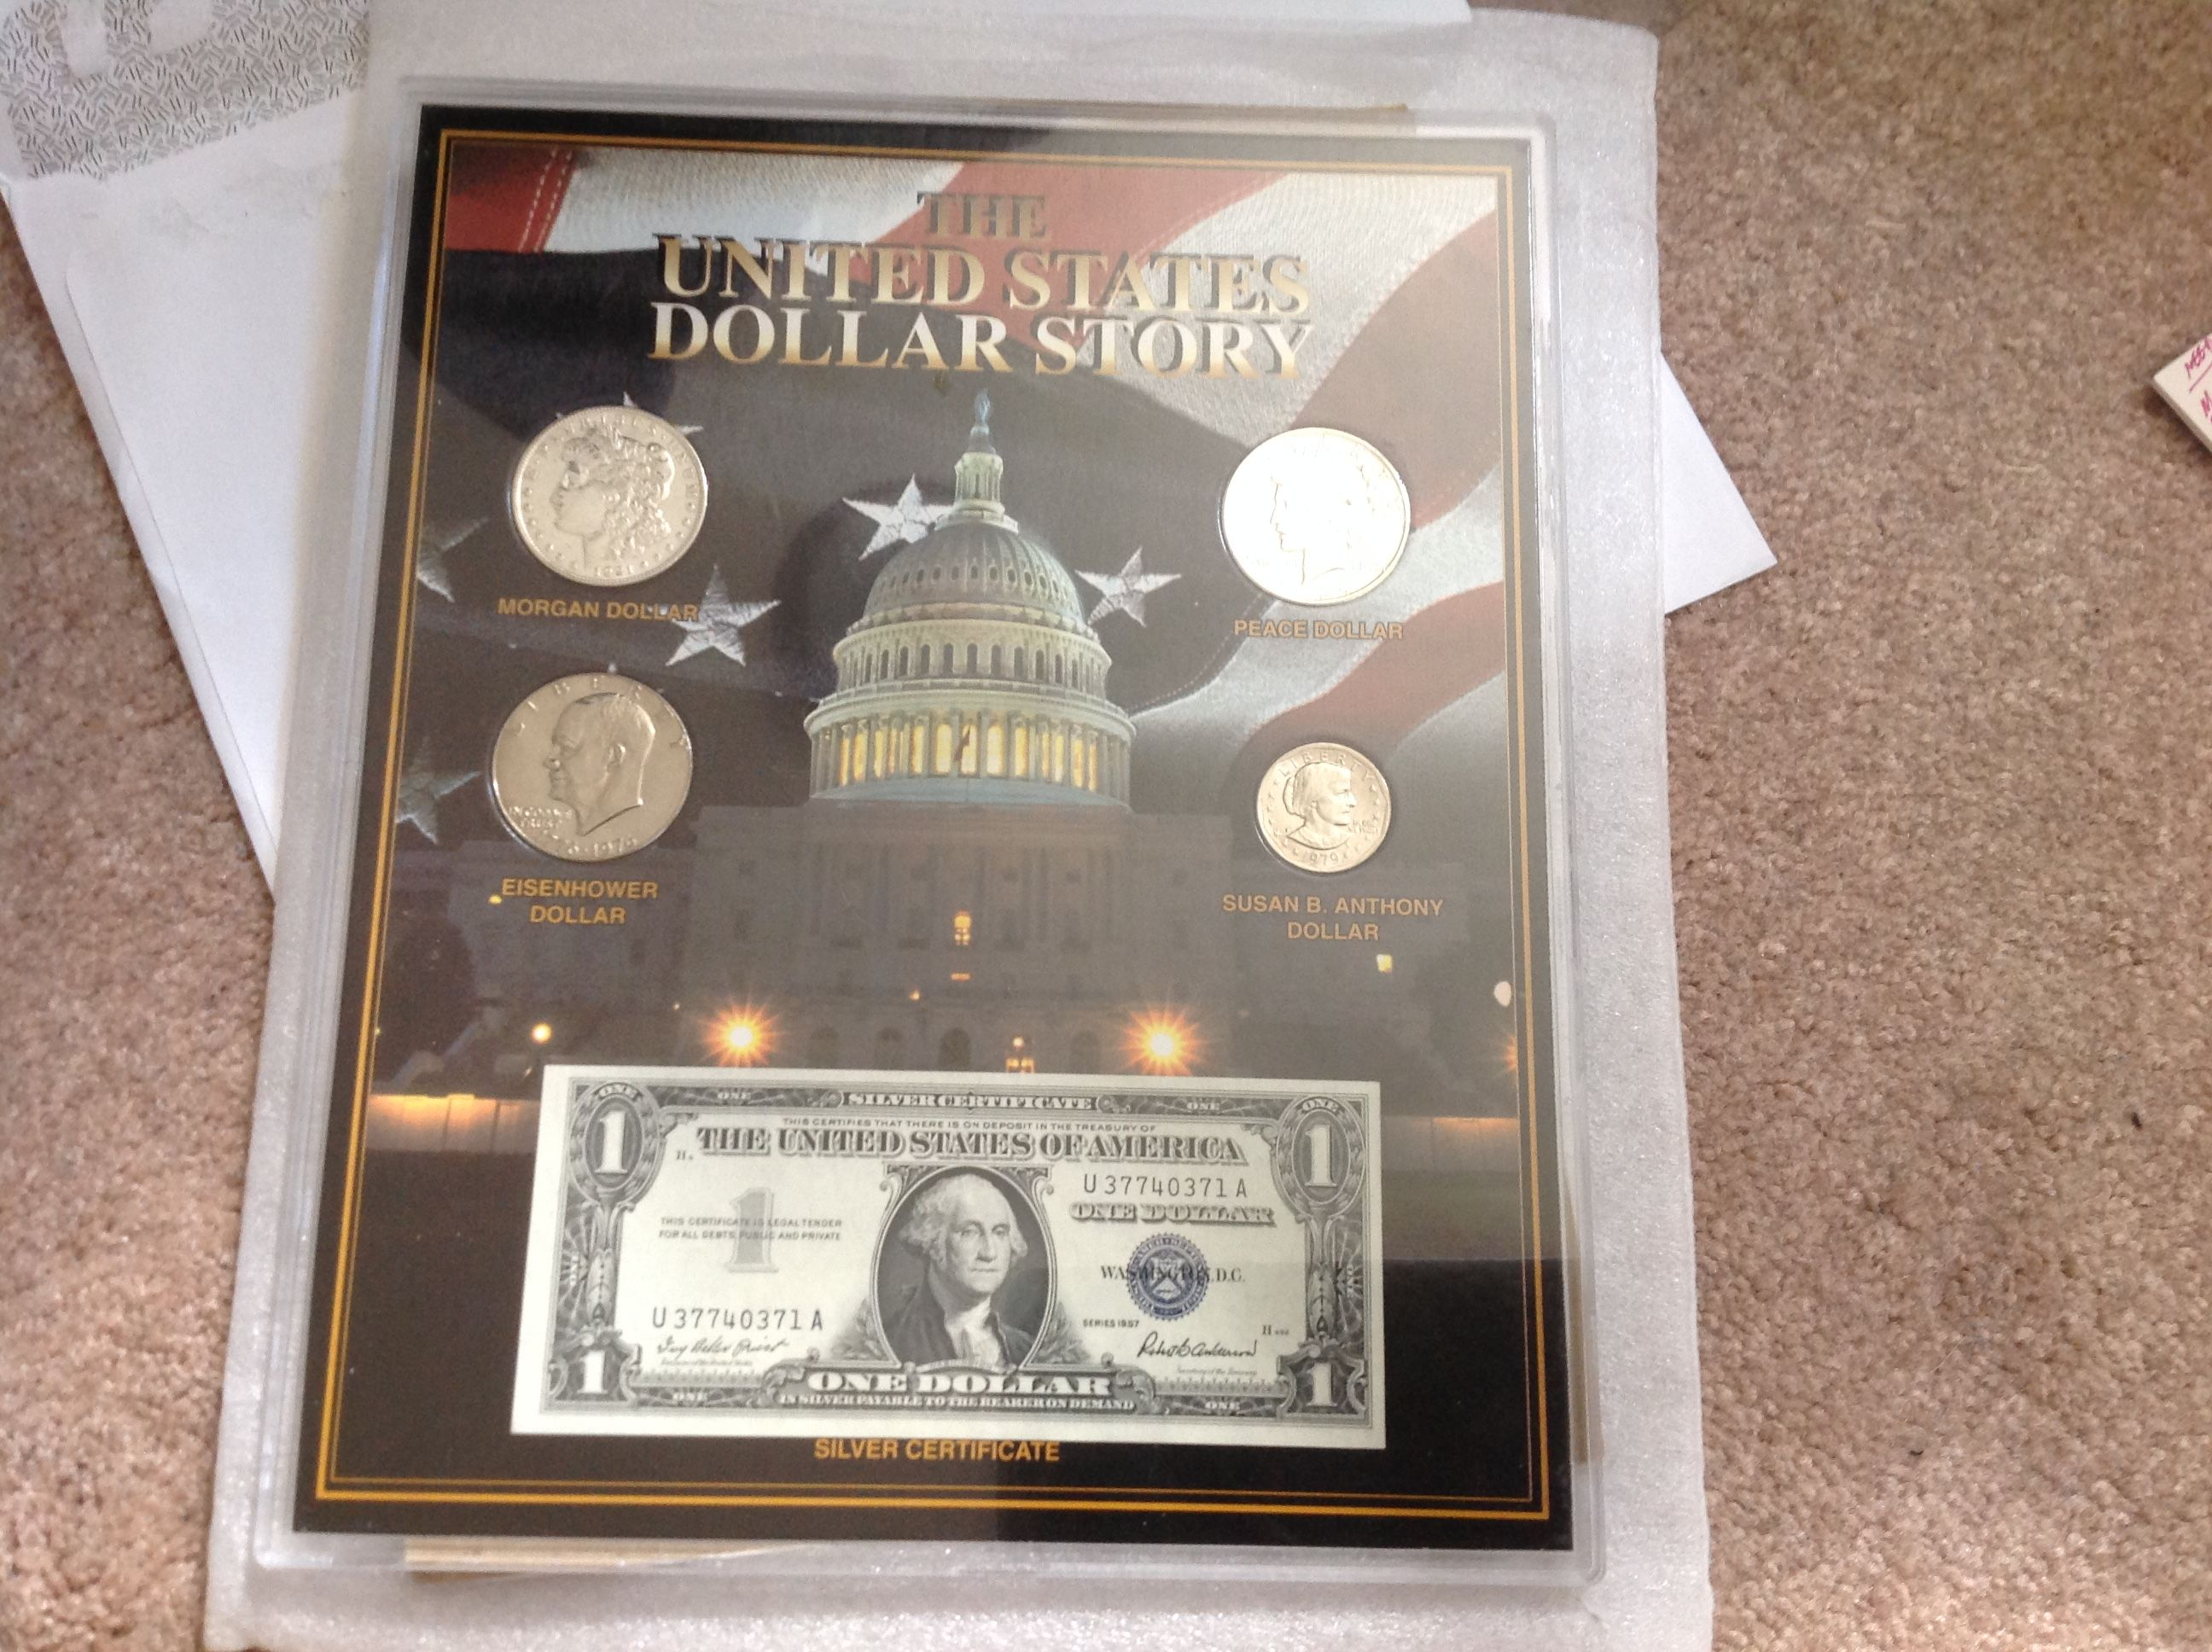 The United States Dollar Story. Framed SSCA Certified. - for sale ...